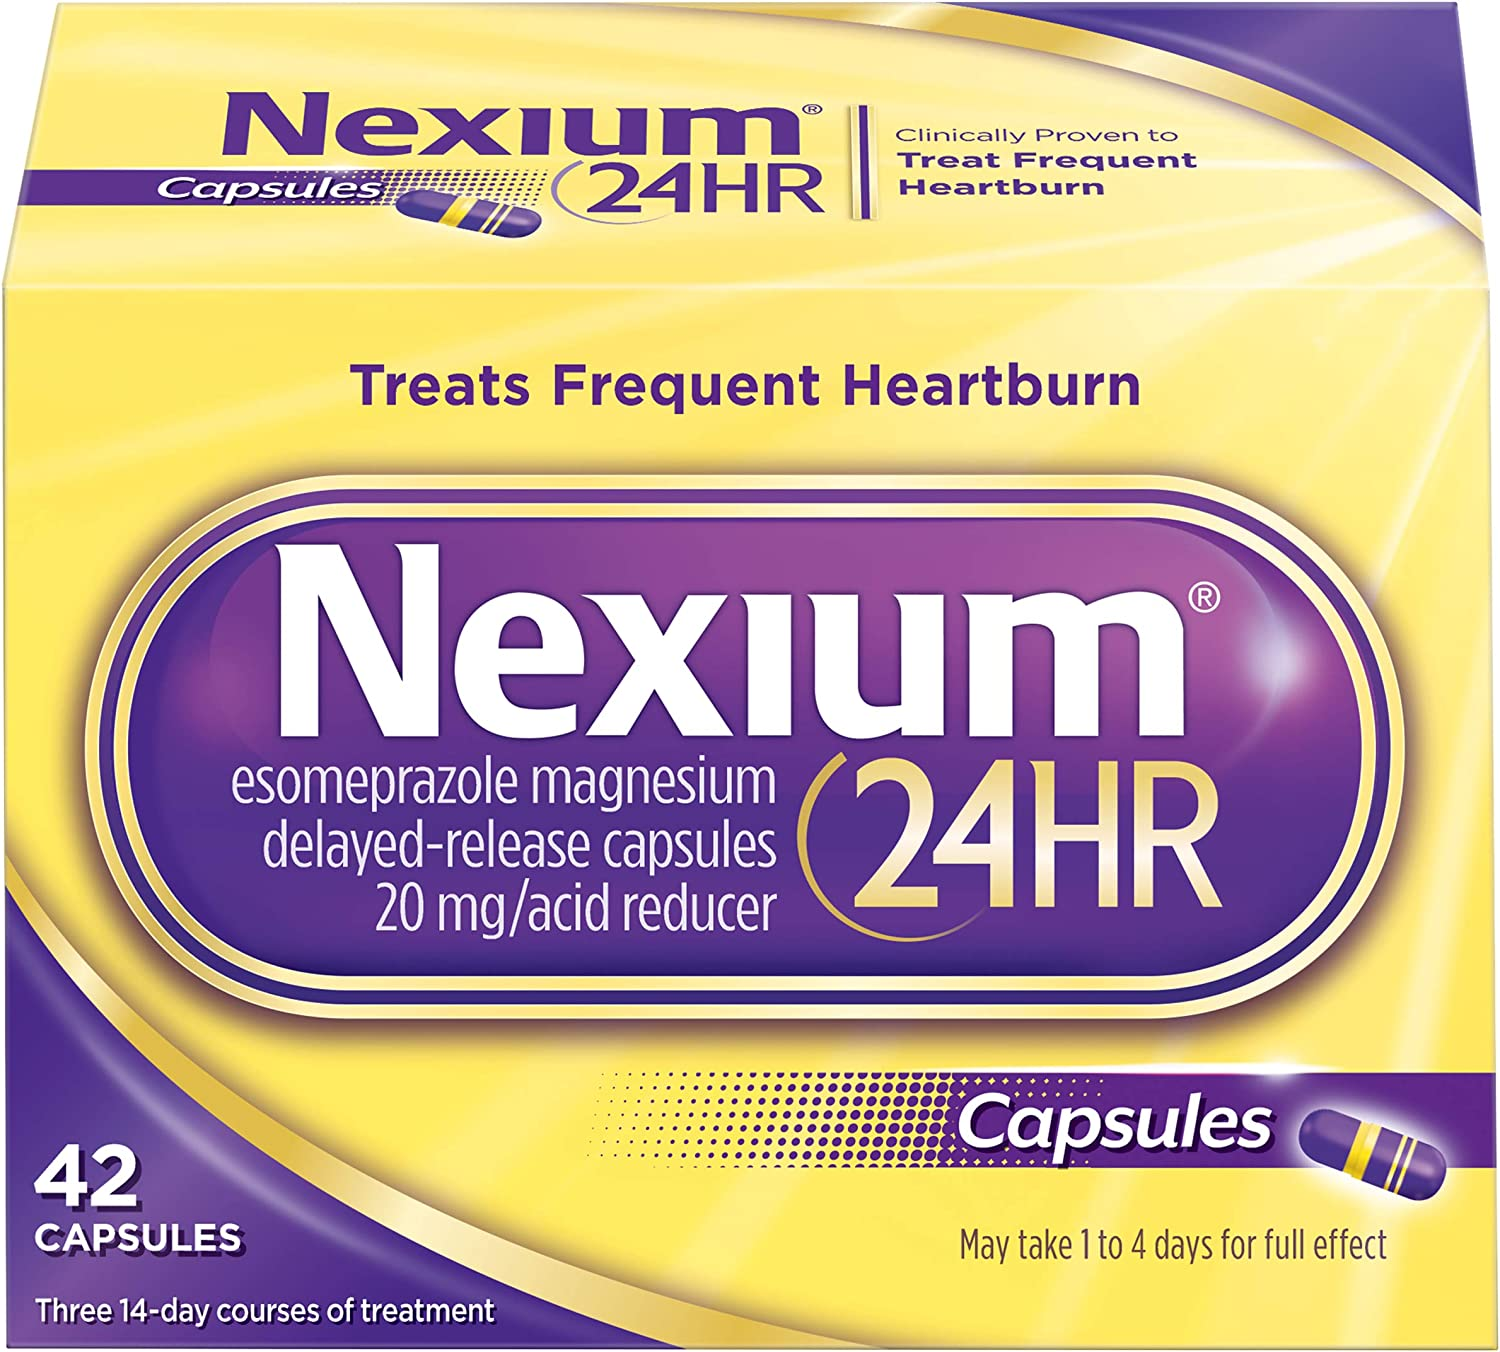 Nexium 24HR (42 Count, Capsules) All-Day, All-Night Protection from Frequent Heartburn Medicine with Esomeprazole Magnesium 20mg Acid Reducer: Health & Personal Care